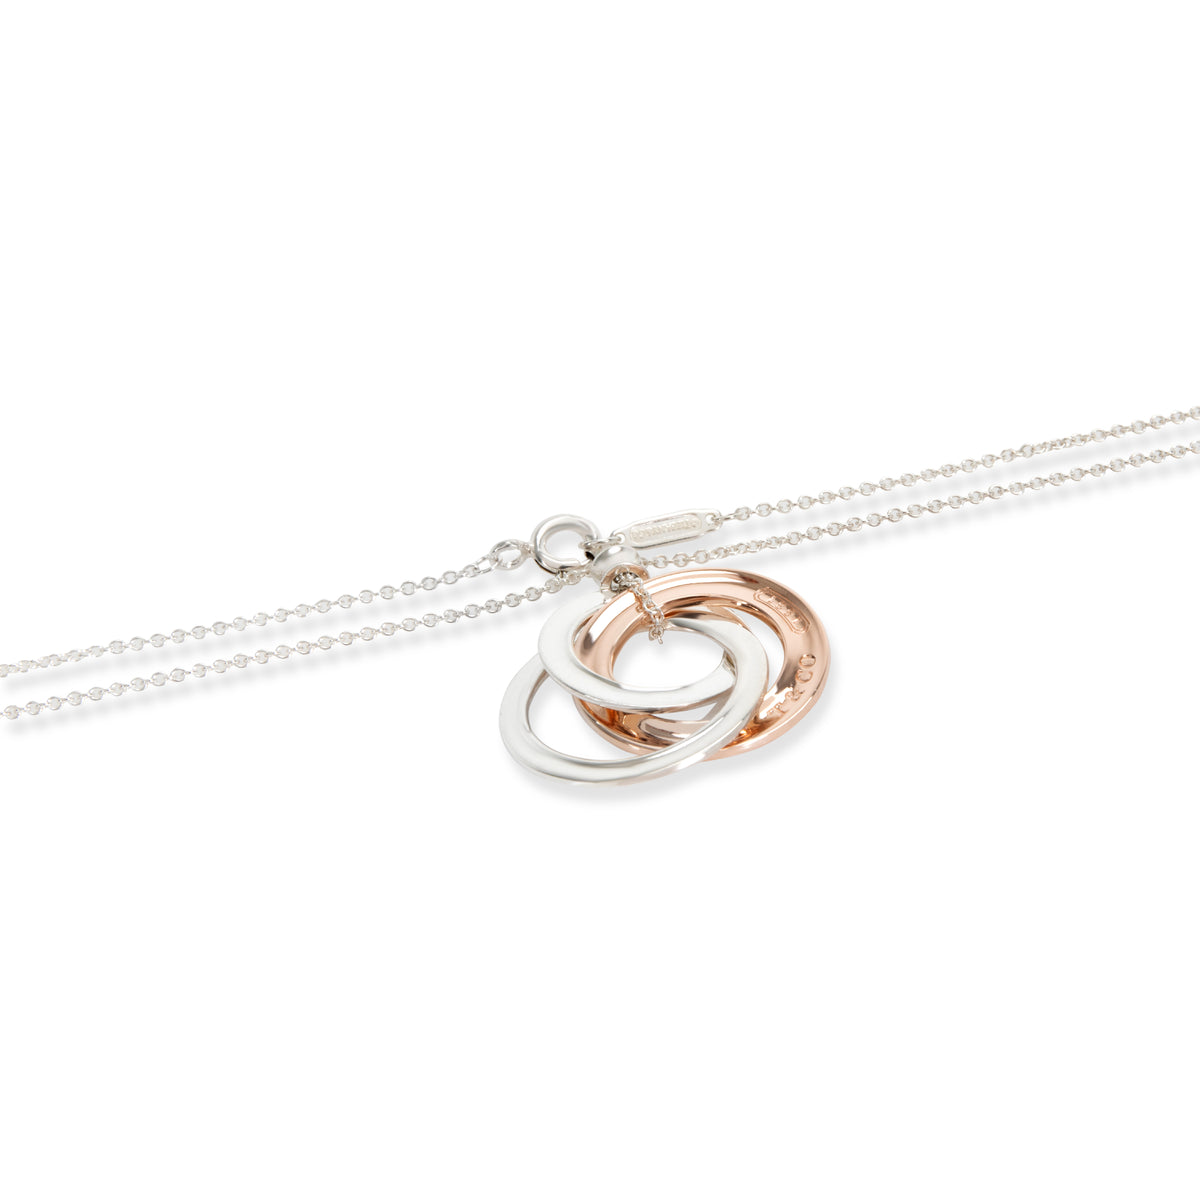 Tiffany & Co. 1837 Circle Necklace in  Rubedo & Sterling Silver